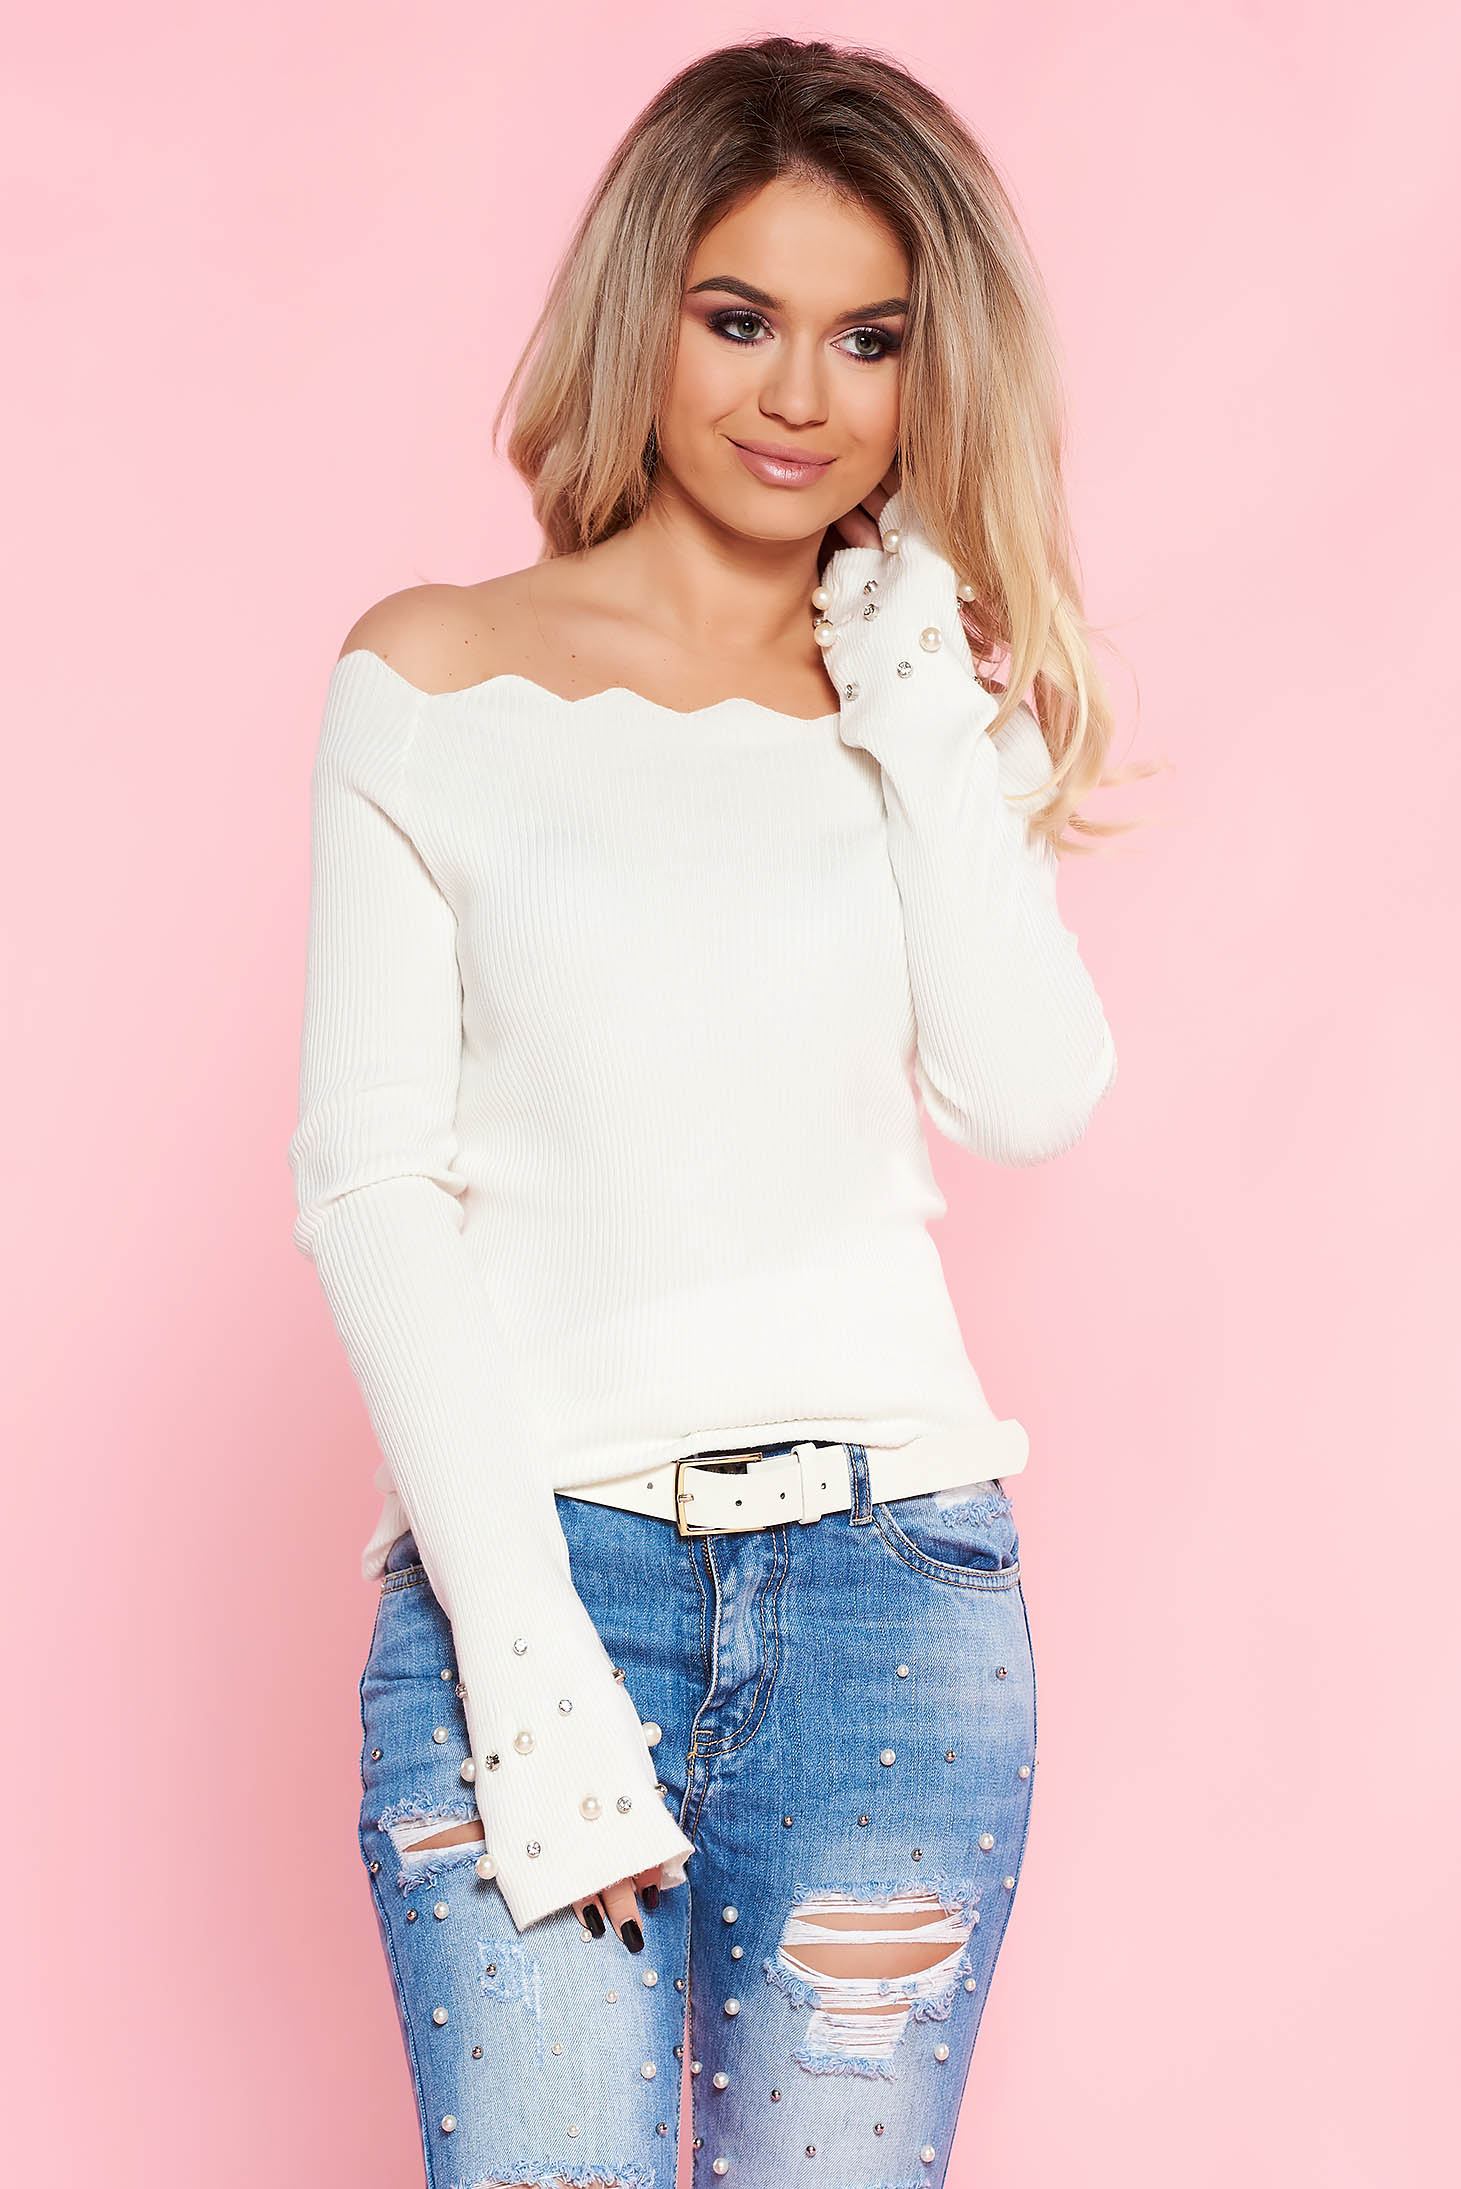 SunShine white casual sweater with tented cut knitted fabric with pearls